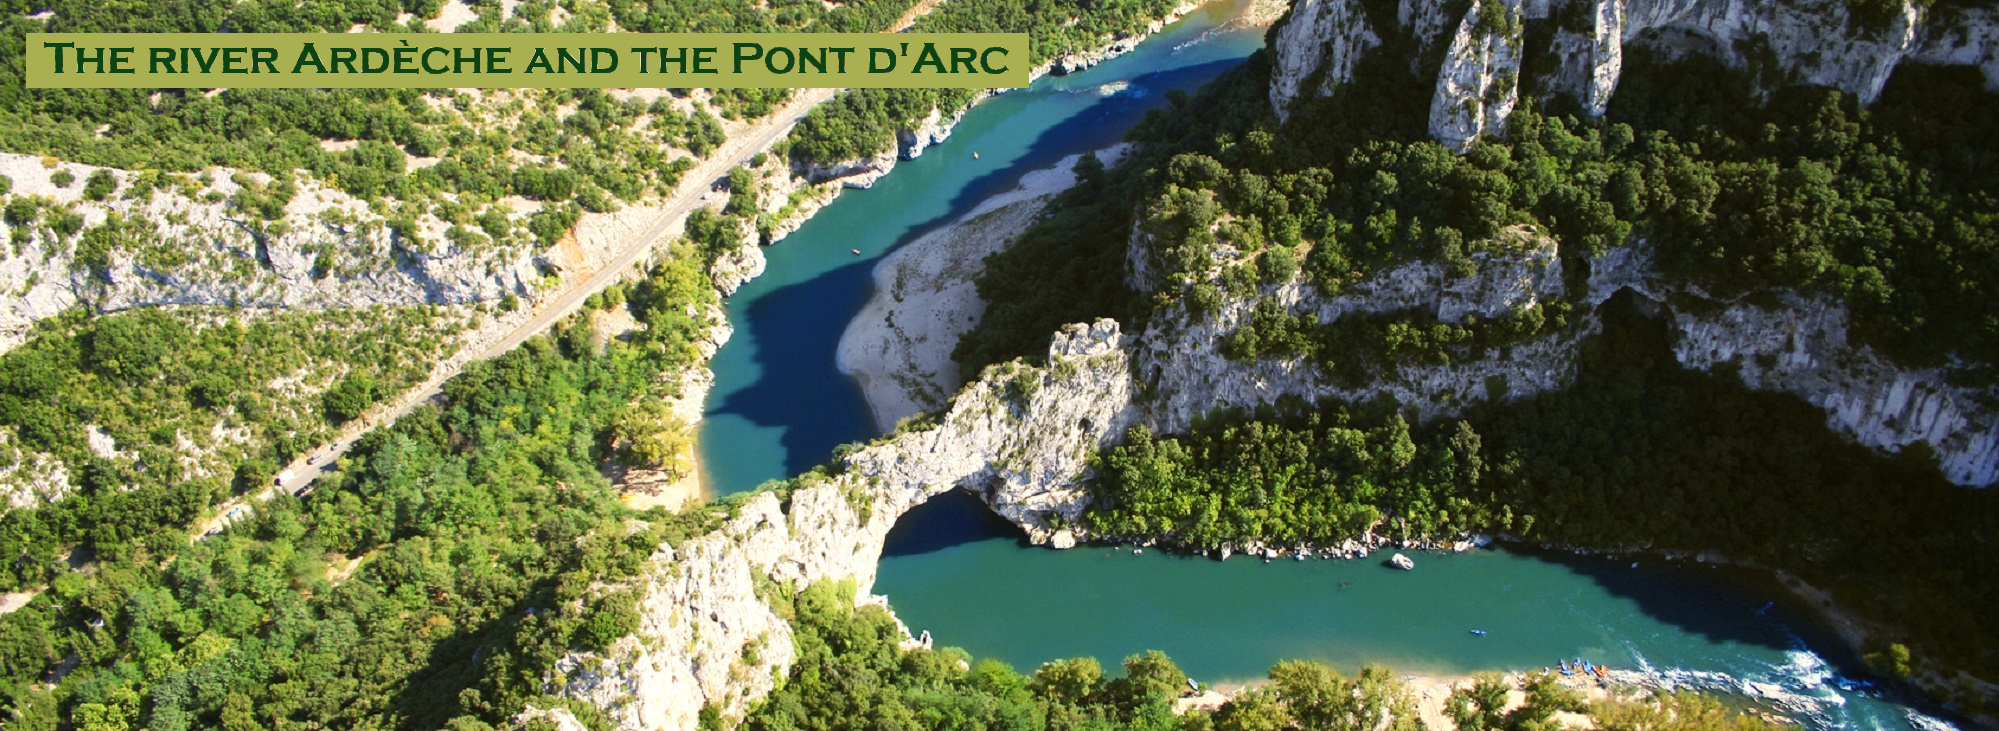 The river Ardèche and the Pont d'Arc